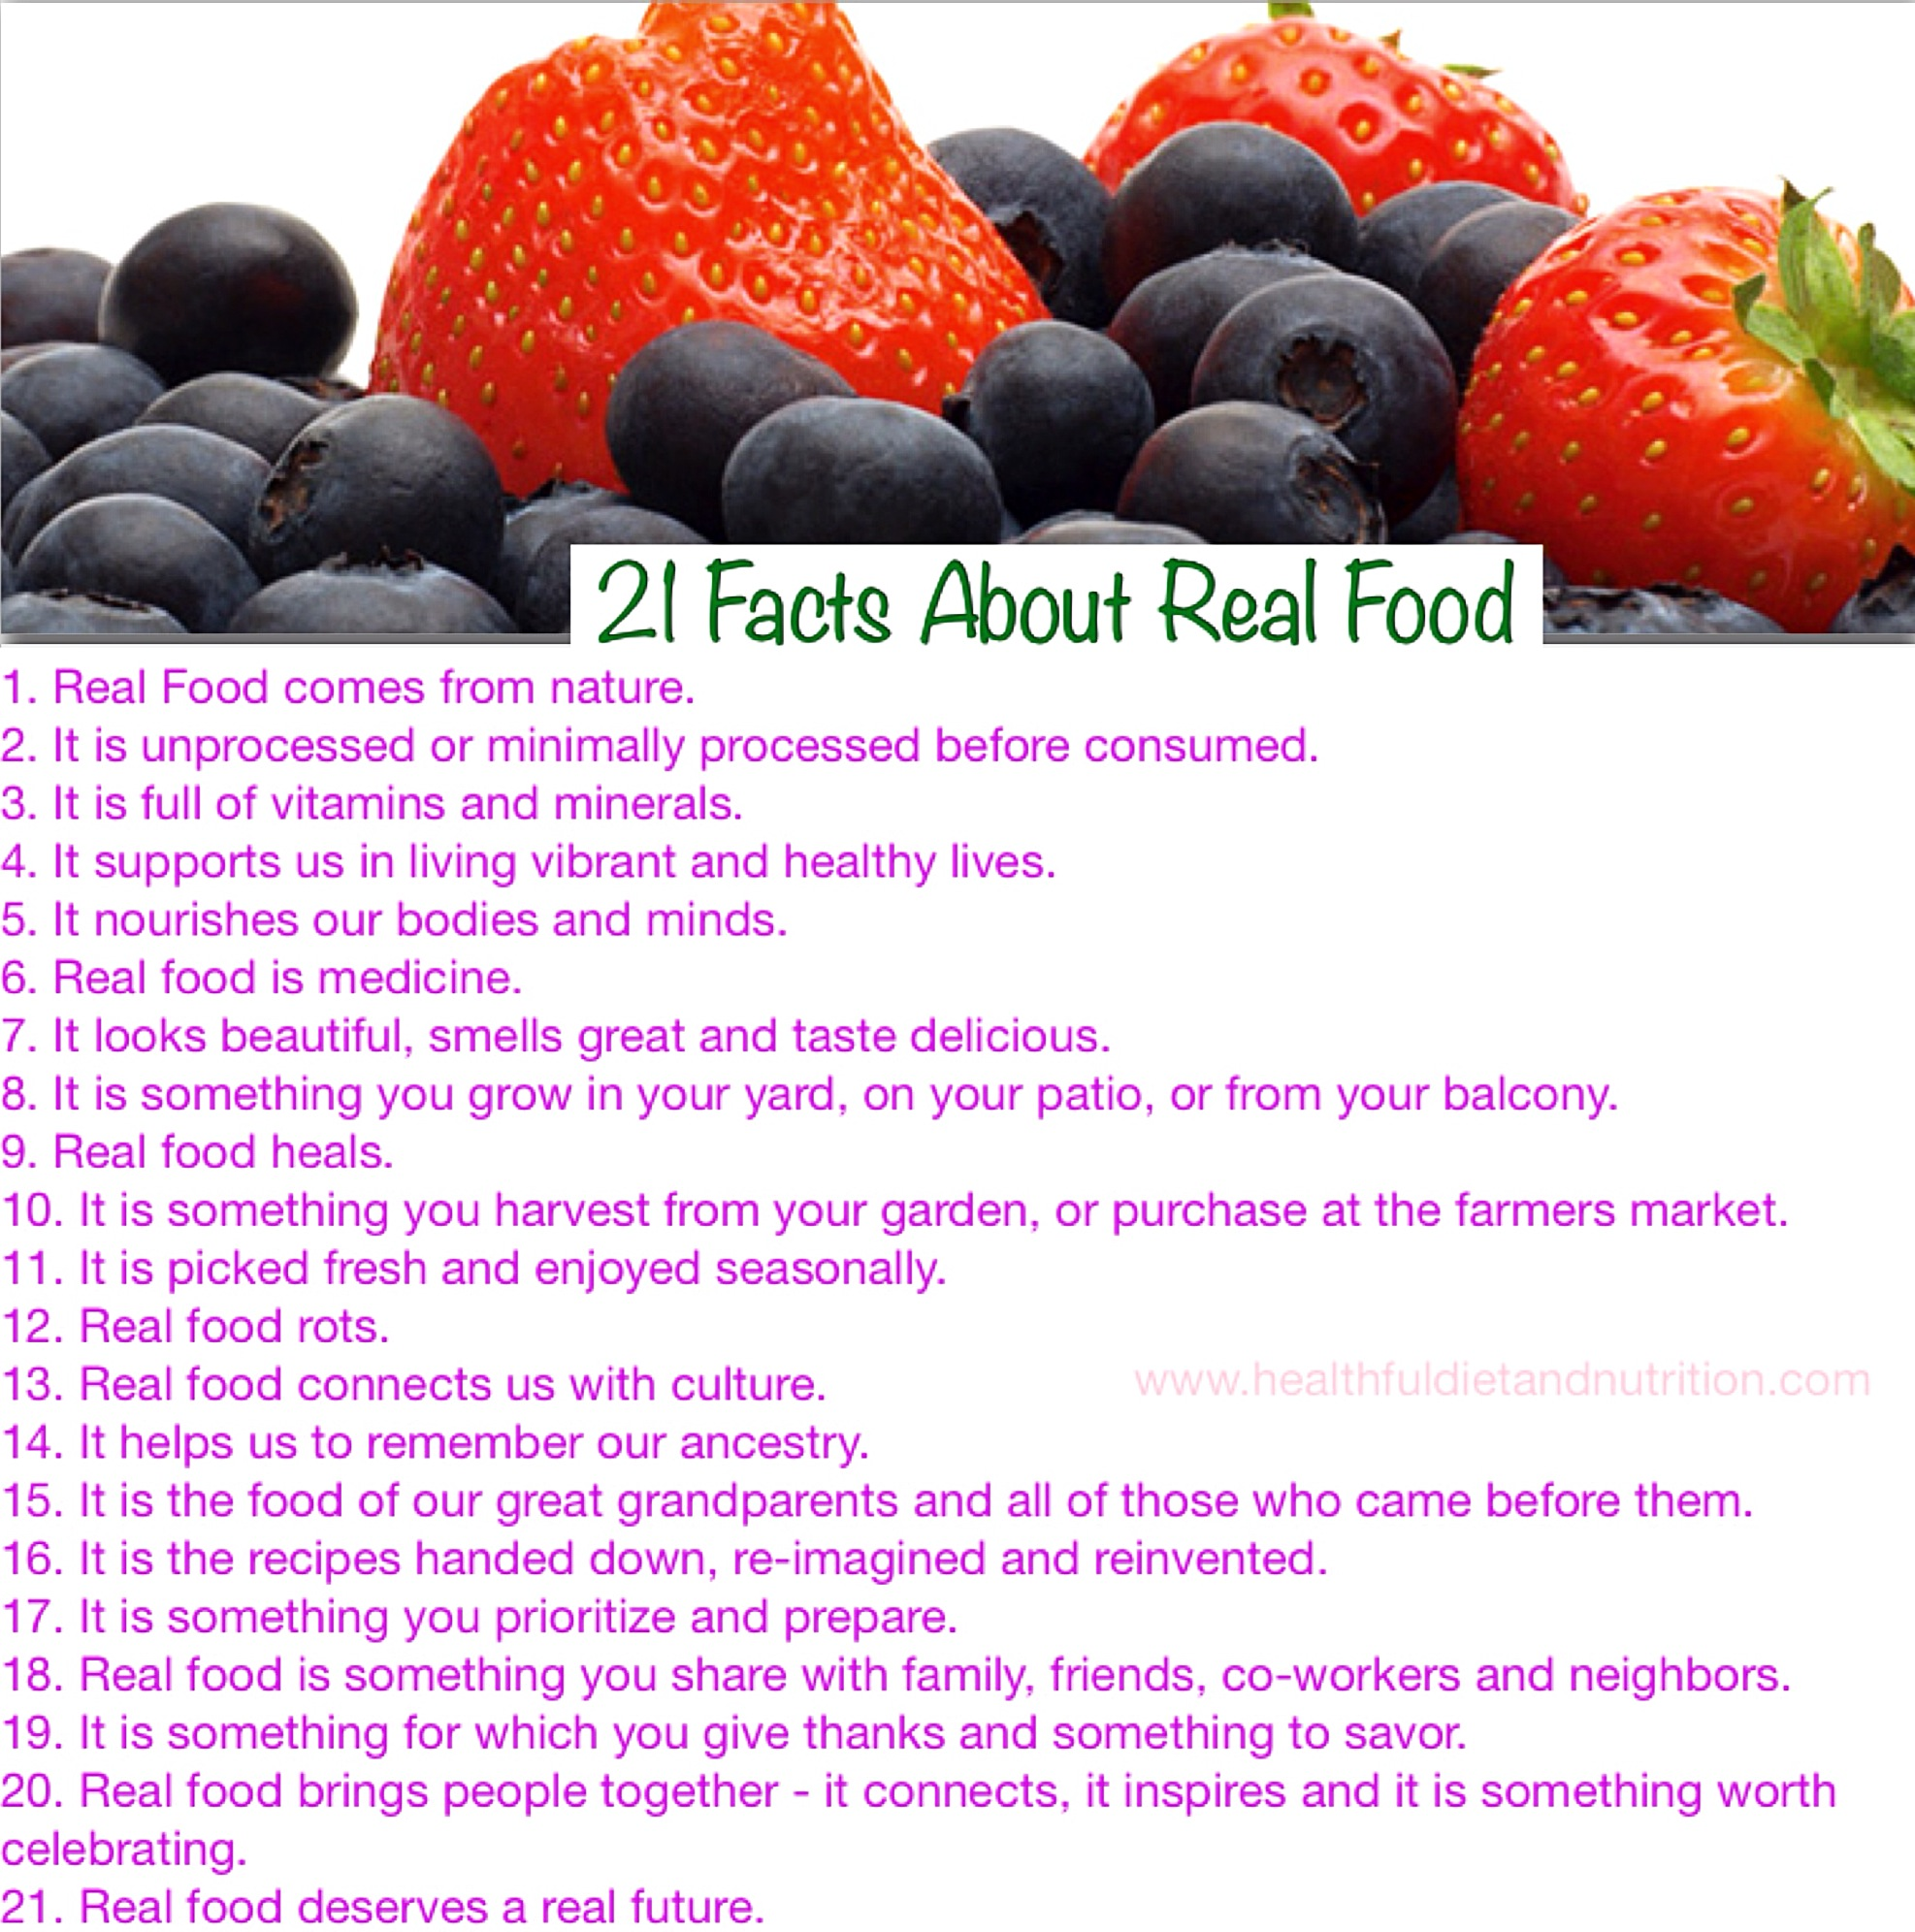 21 Facts About Real Food